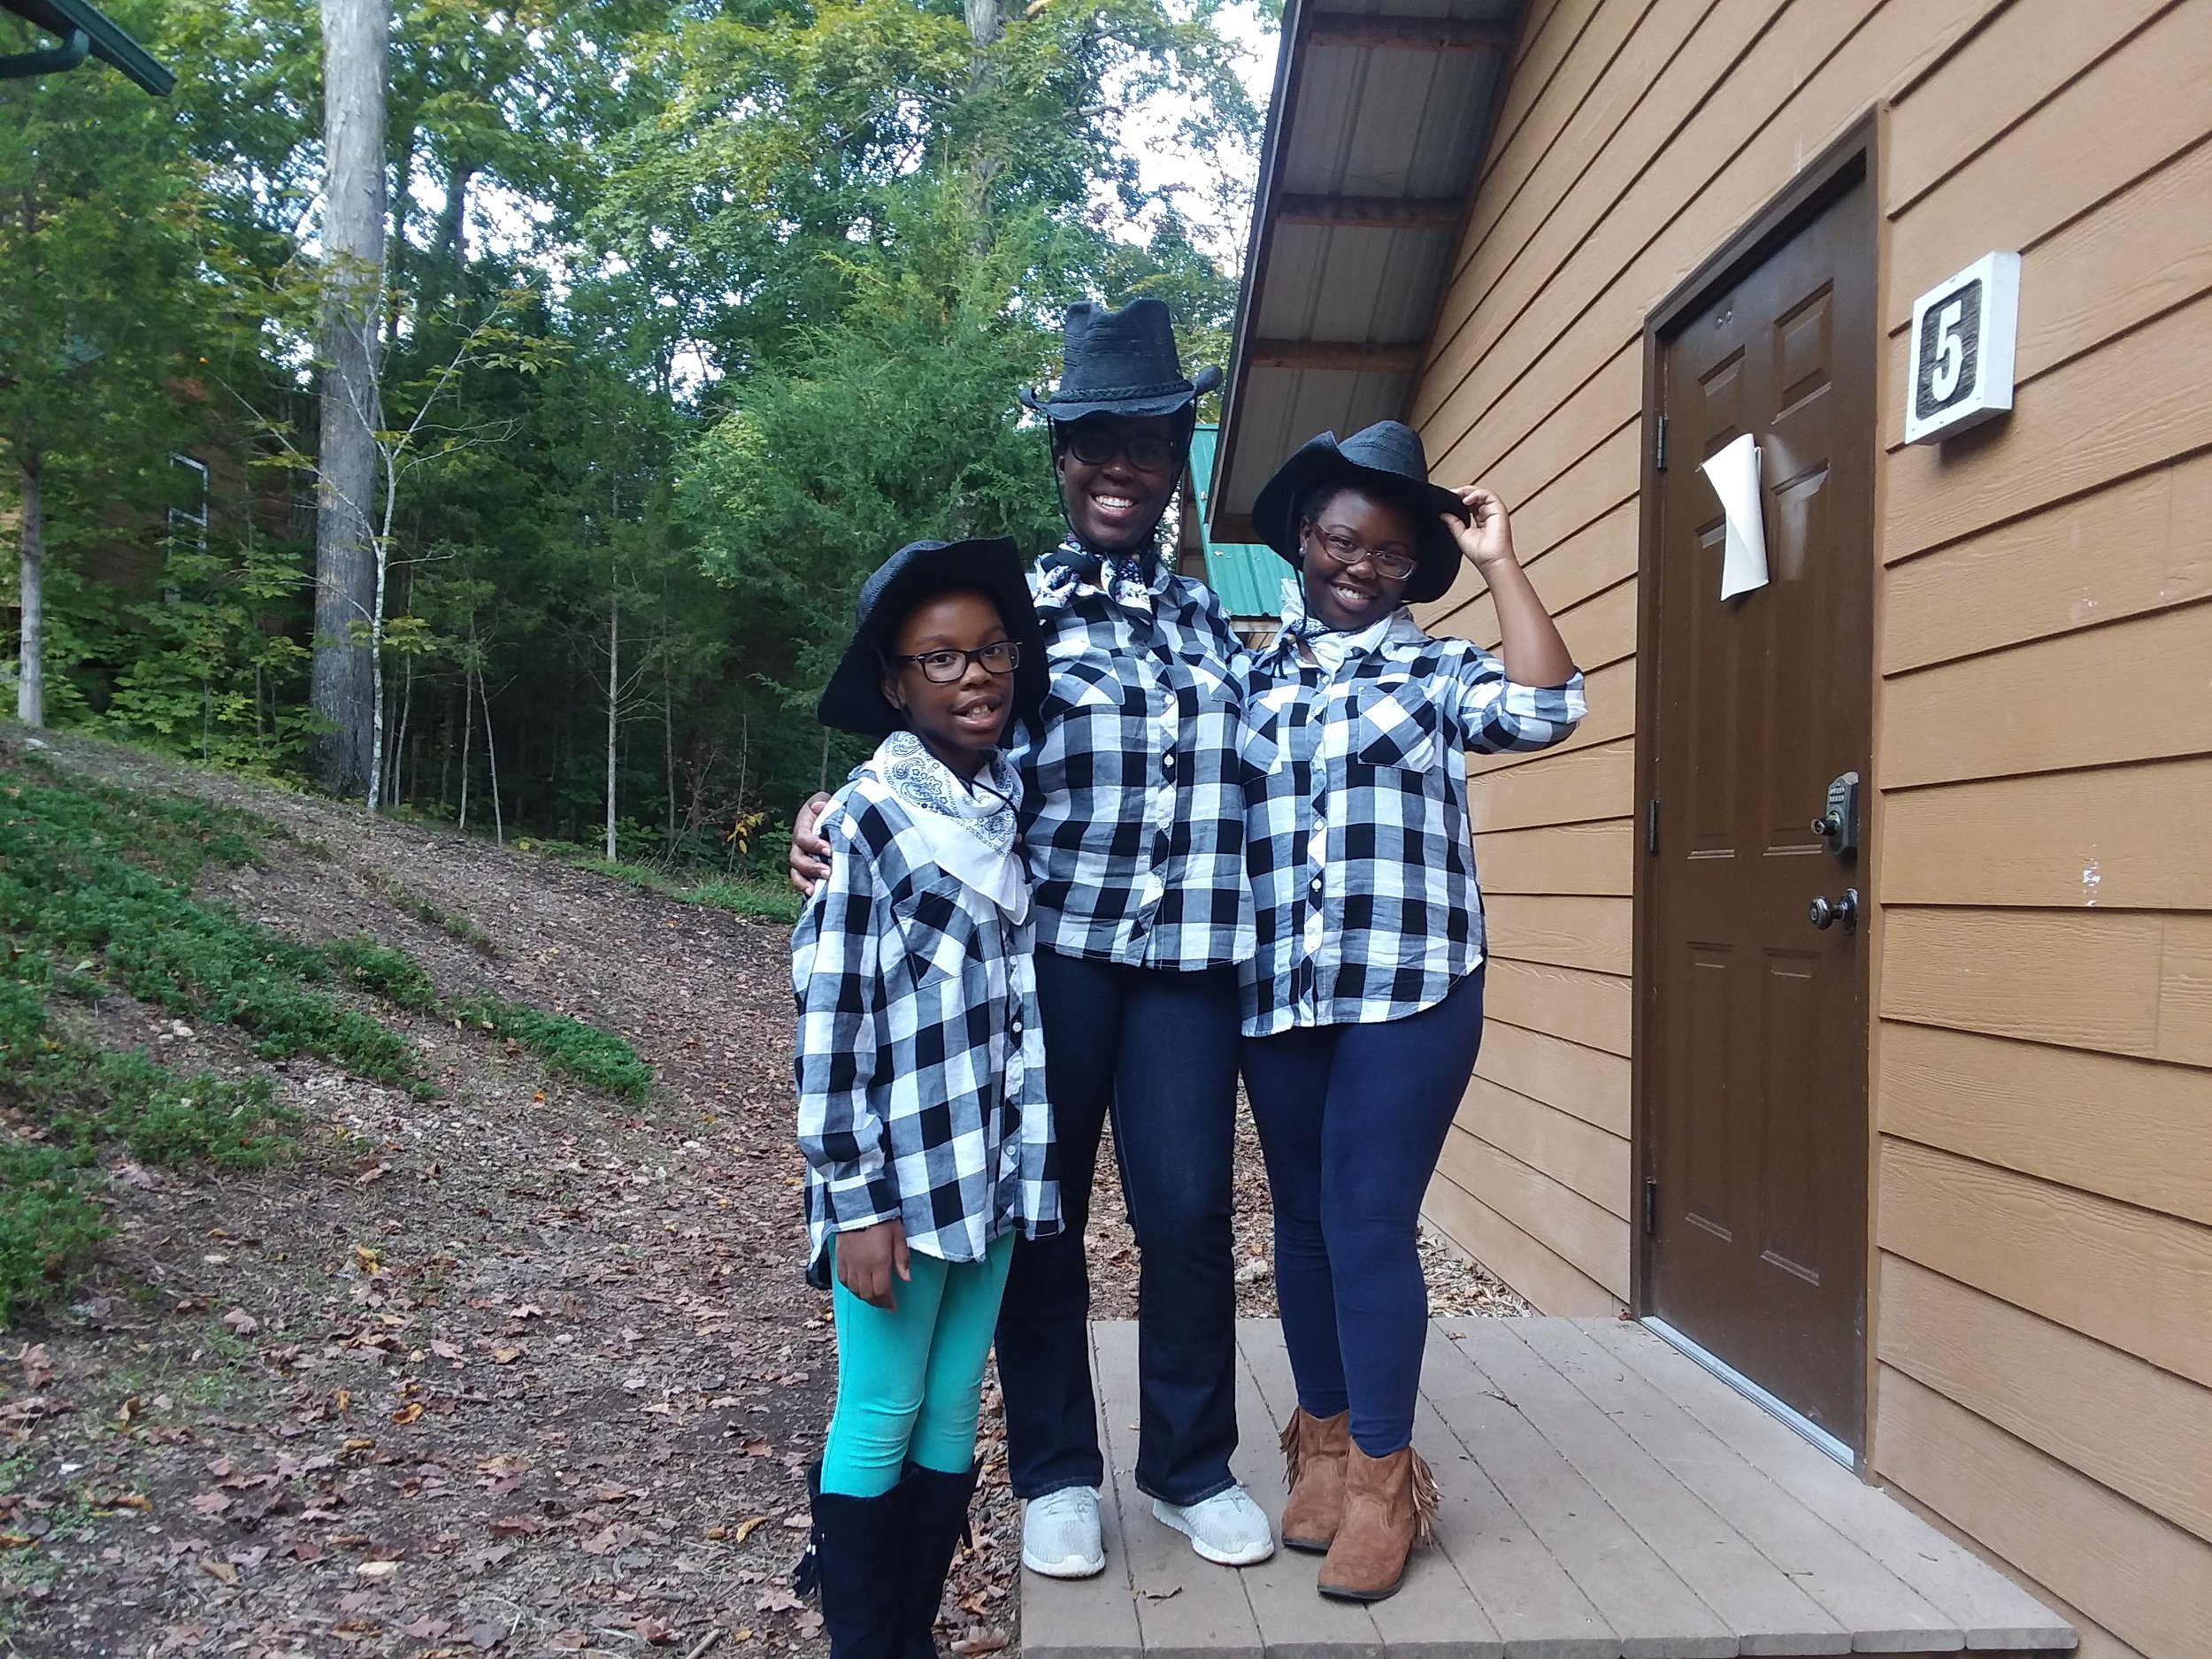 Western night at the Mother Daughter Retreat